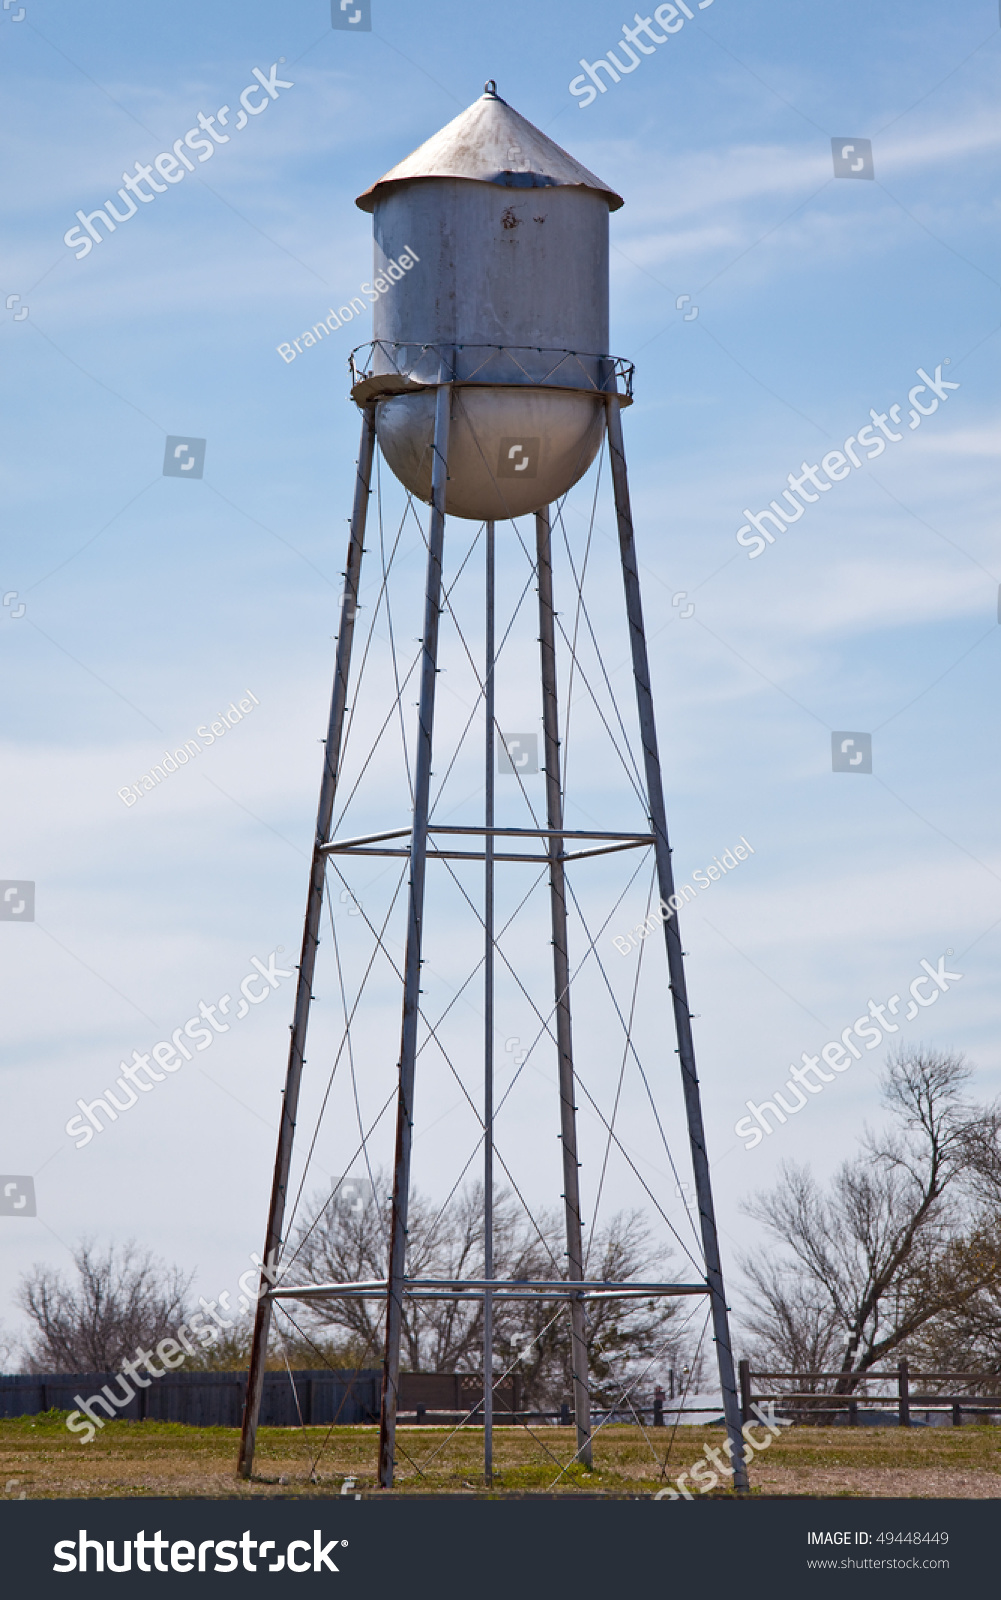 An old water tower on a farm stock photo 49448449 for Farmhouse tower